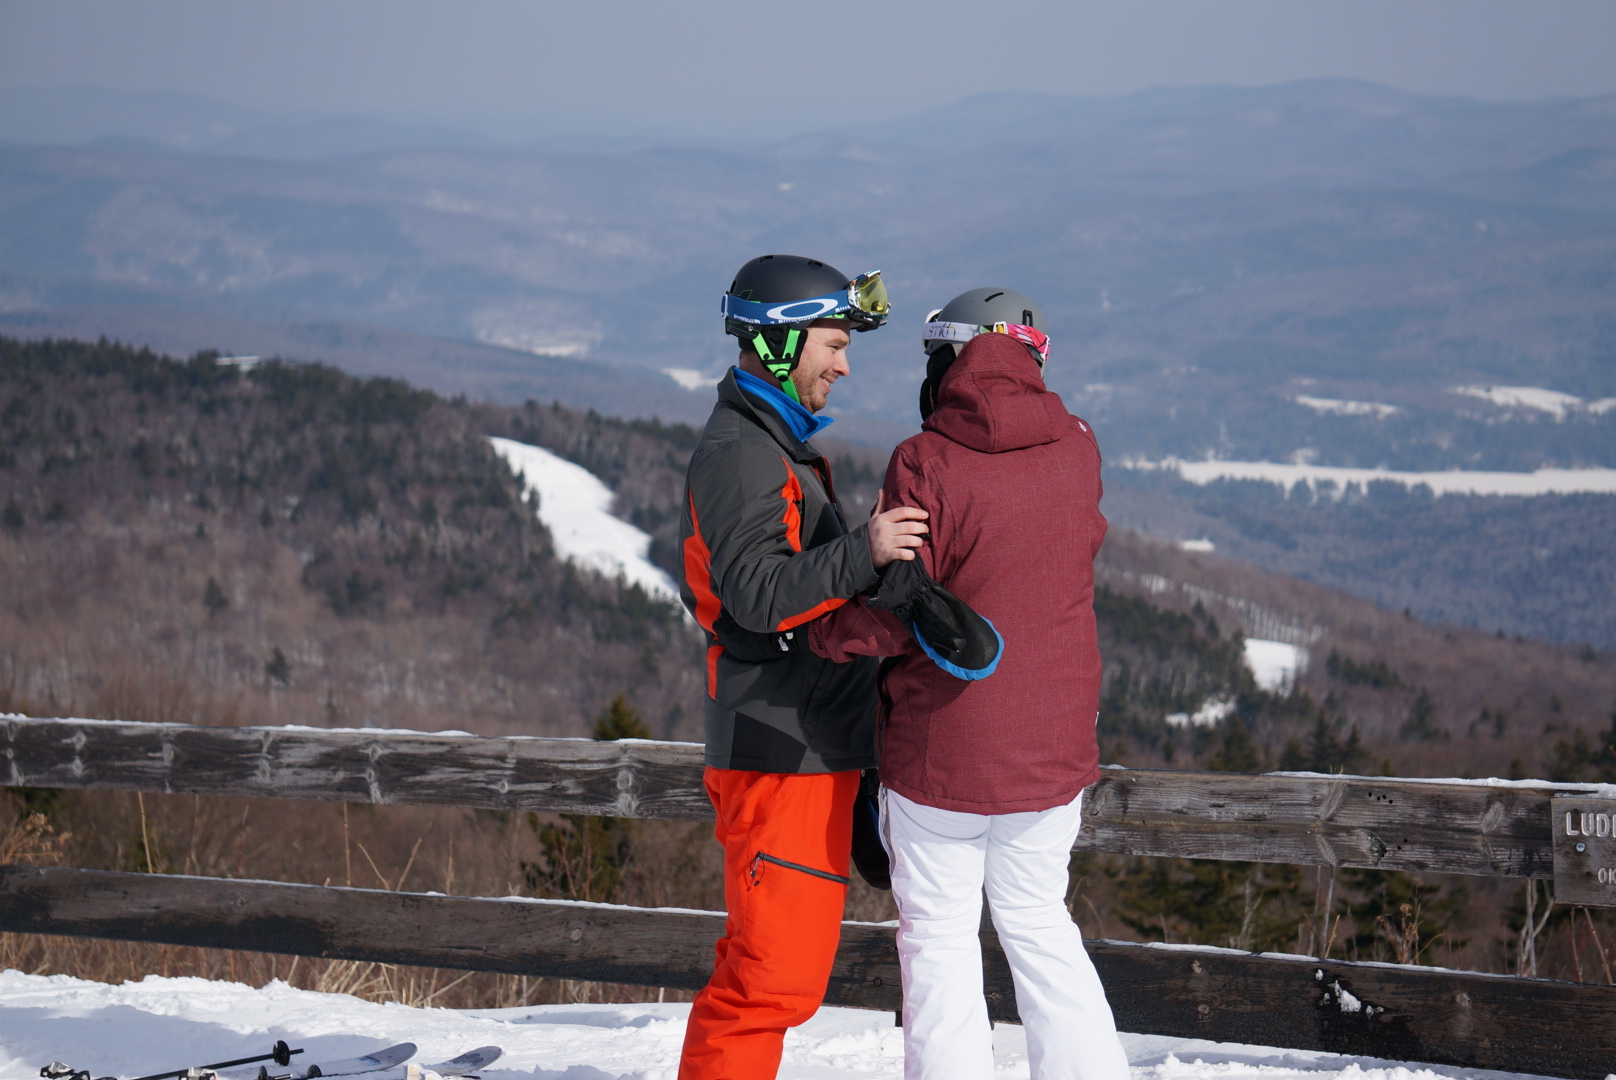 Image 2 of Sarah and Jimmy | The Perfect Mountaintop Proposal